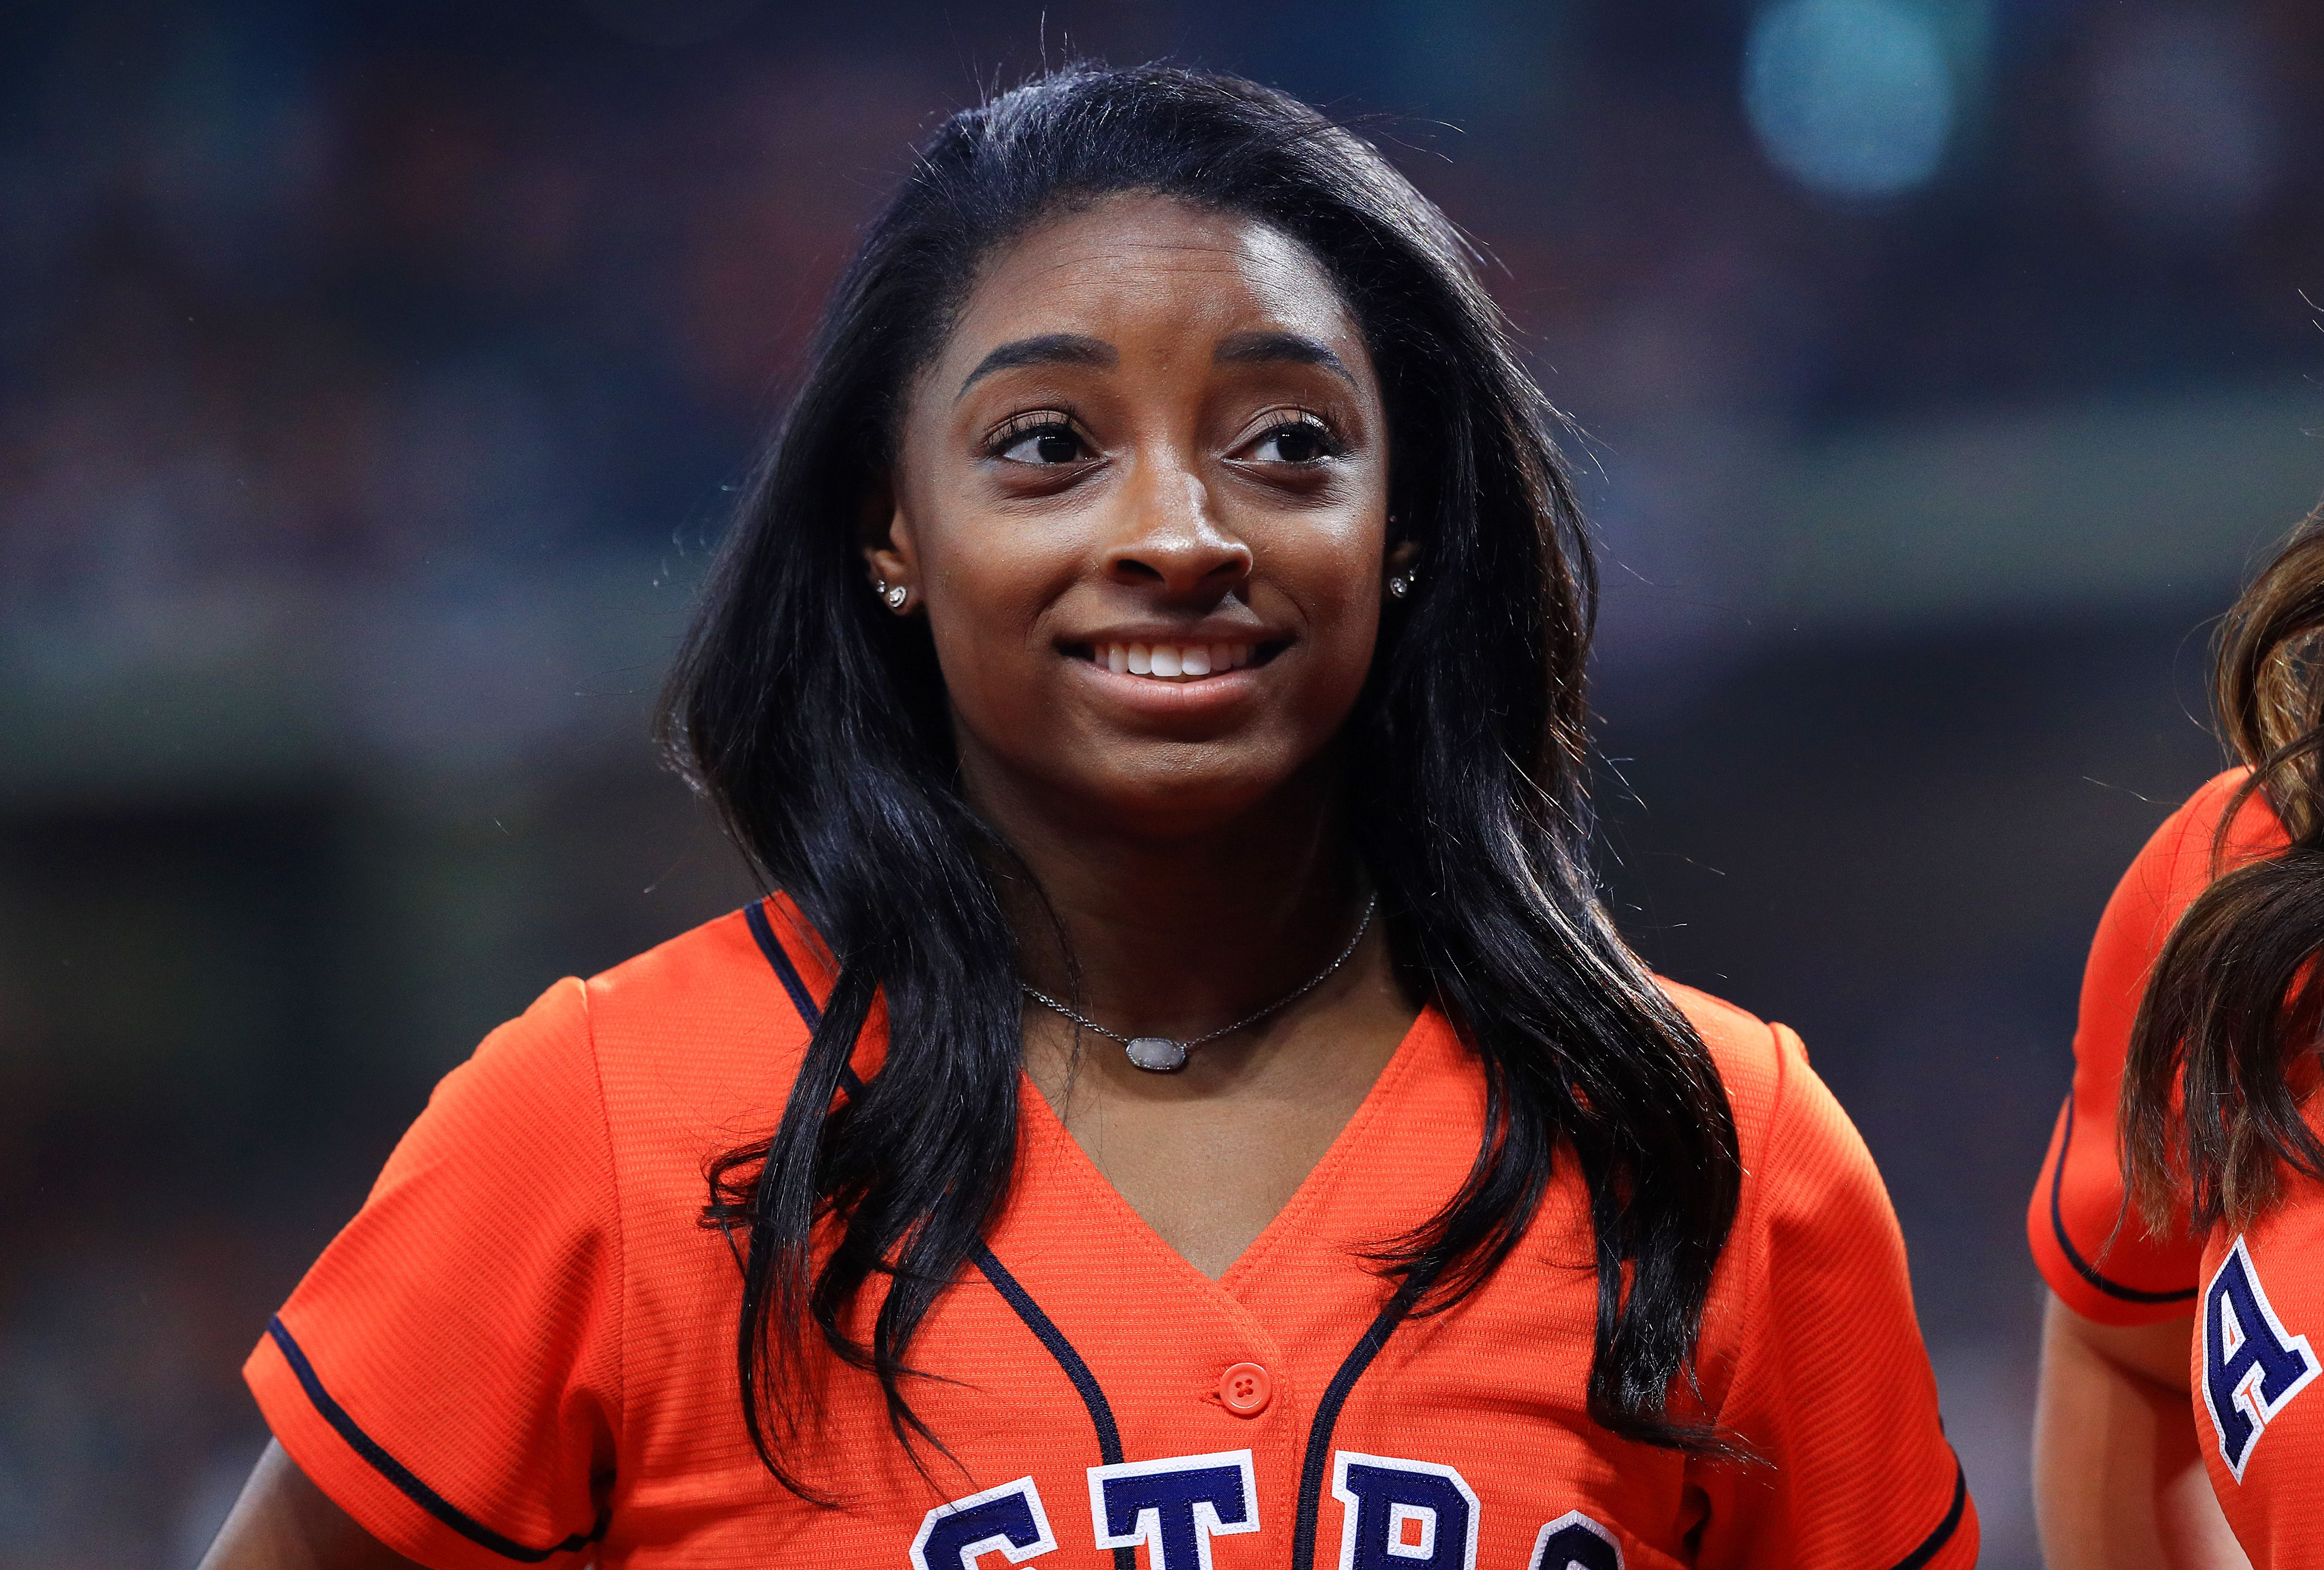 Simone Biles during the World Series game between the Houston Astros and the Washington Nationals on Oct. 23, 2019 in Texas. | Source: Getty Images